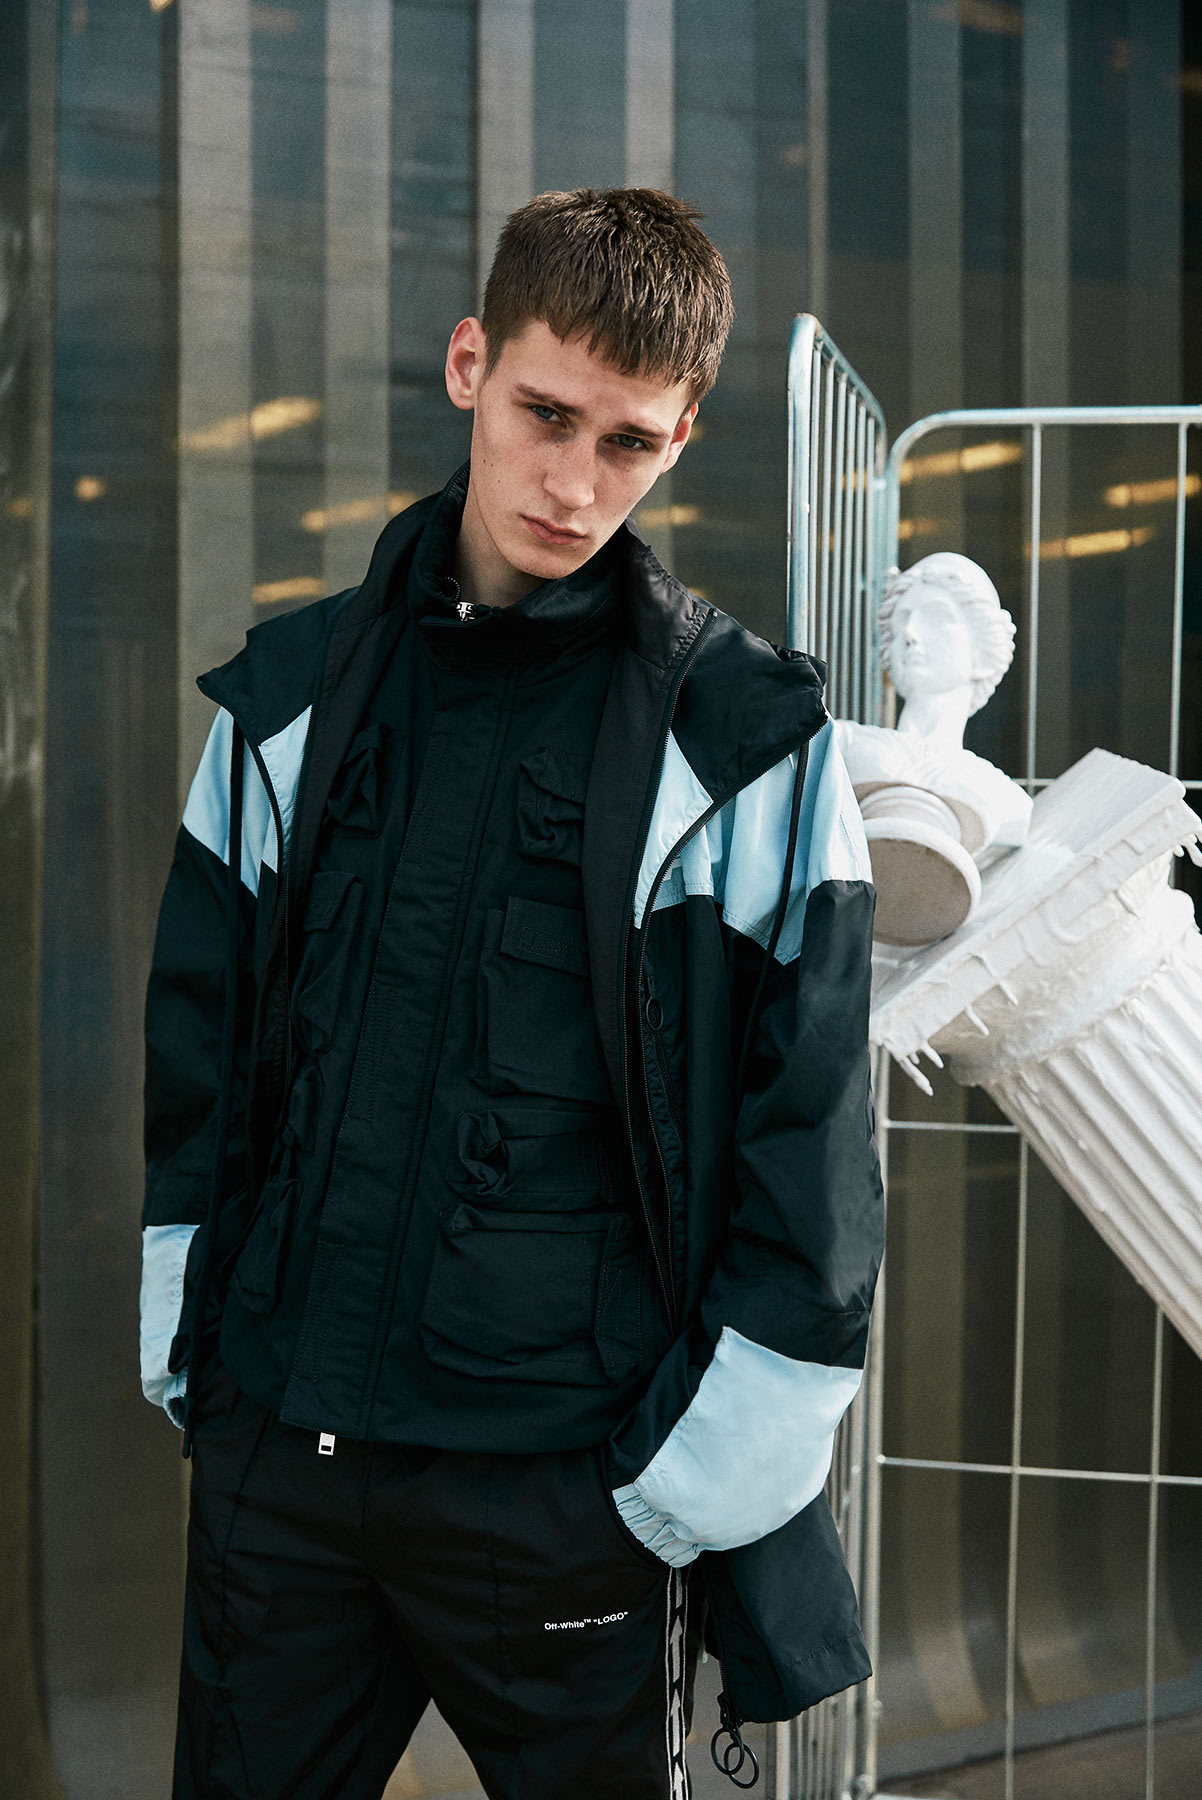 New Milan 2.0 END. AW19 Editorial .01 - Model wears Off-White and Unravel Project